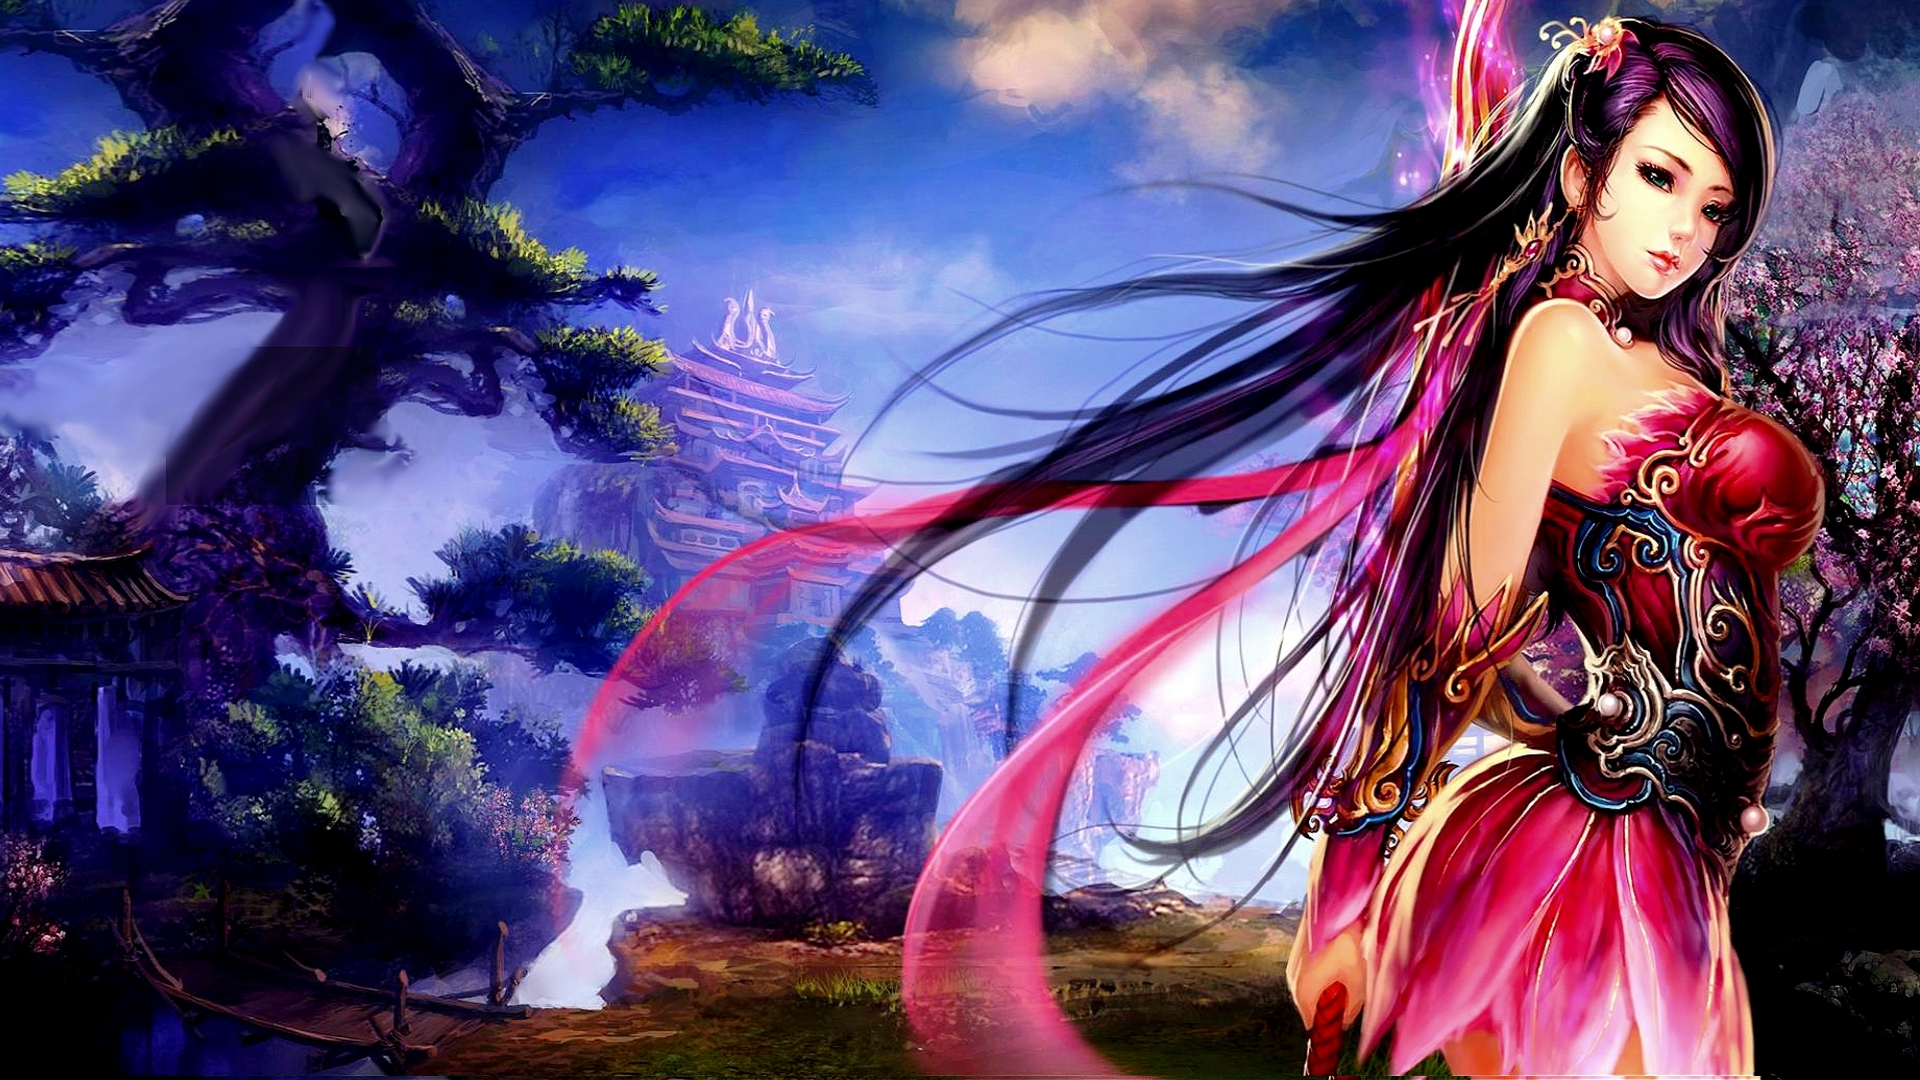 Fantasy girl 1920x1080 wallpaper high definition high quality fantasy girl 1920x1080 voltagebd